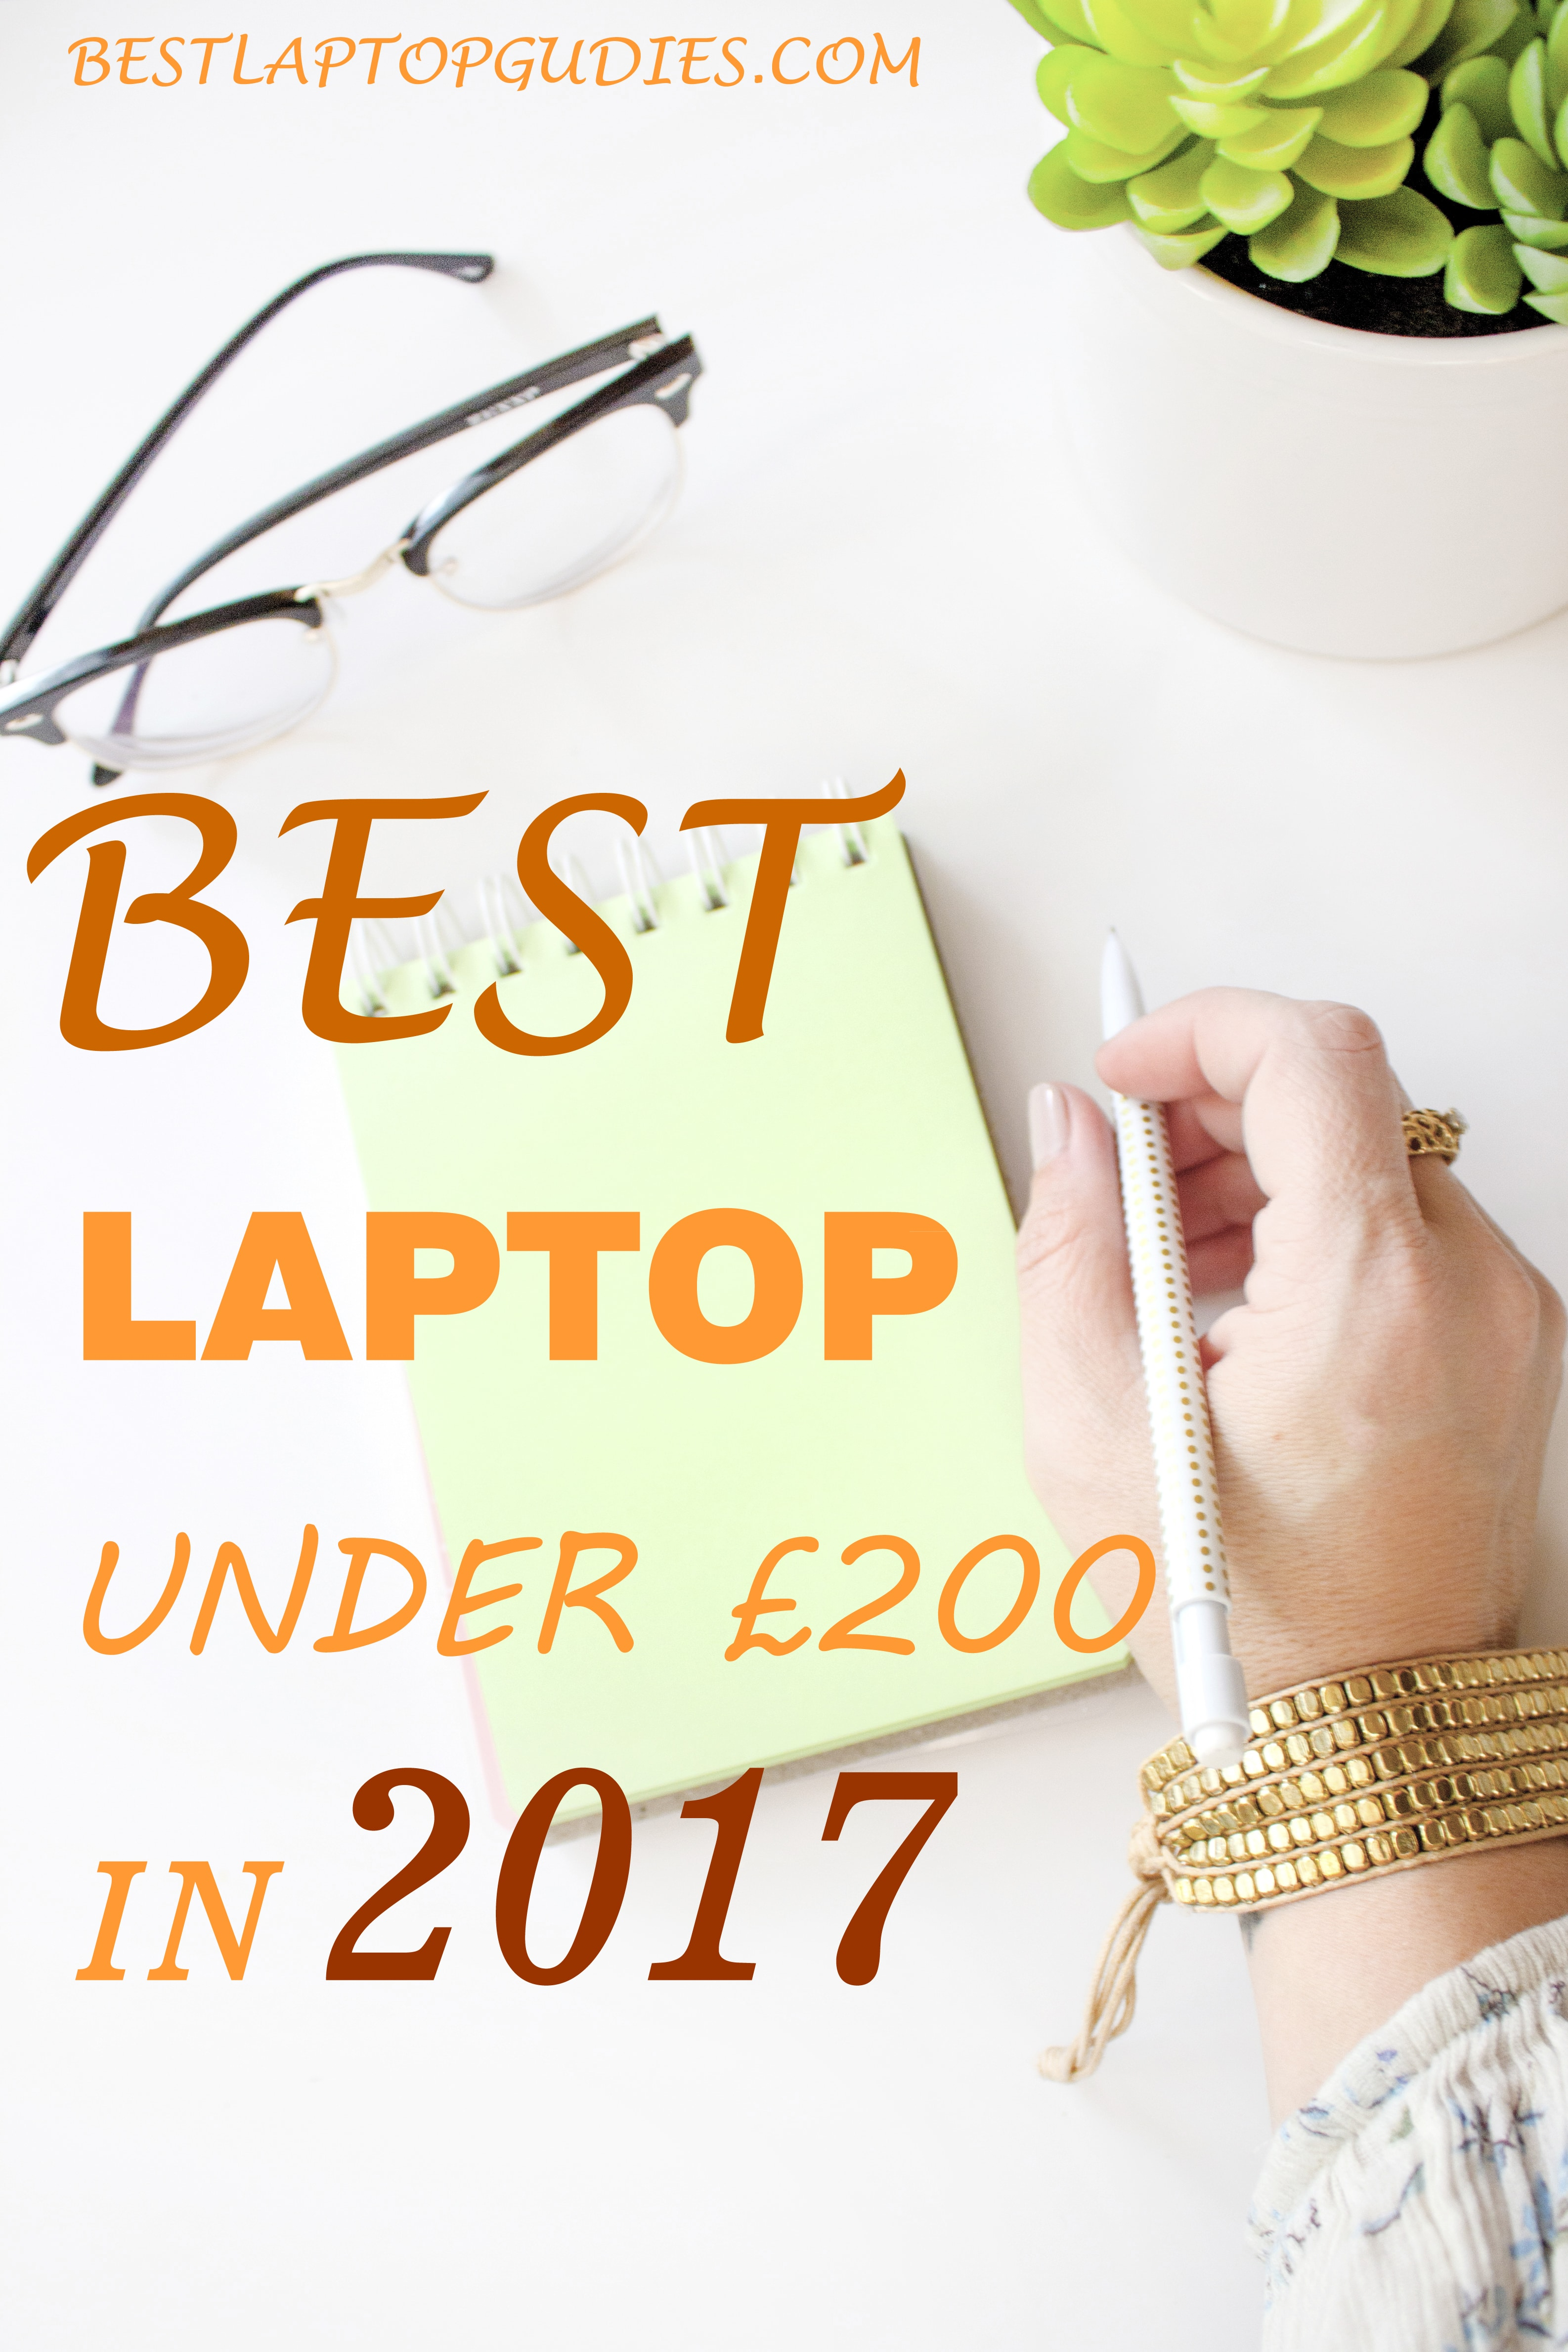 BEST LAPTOP UNDER 200 UK